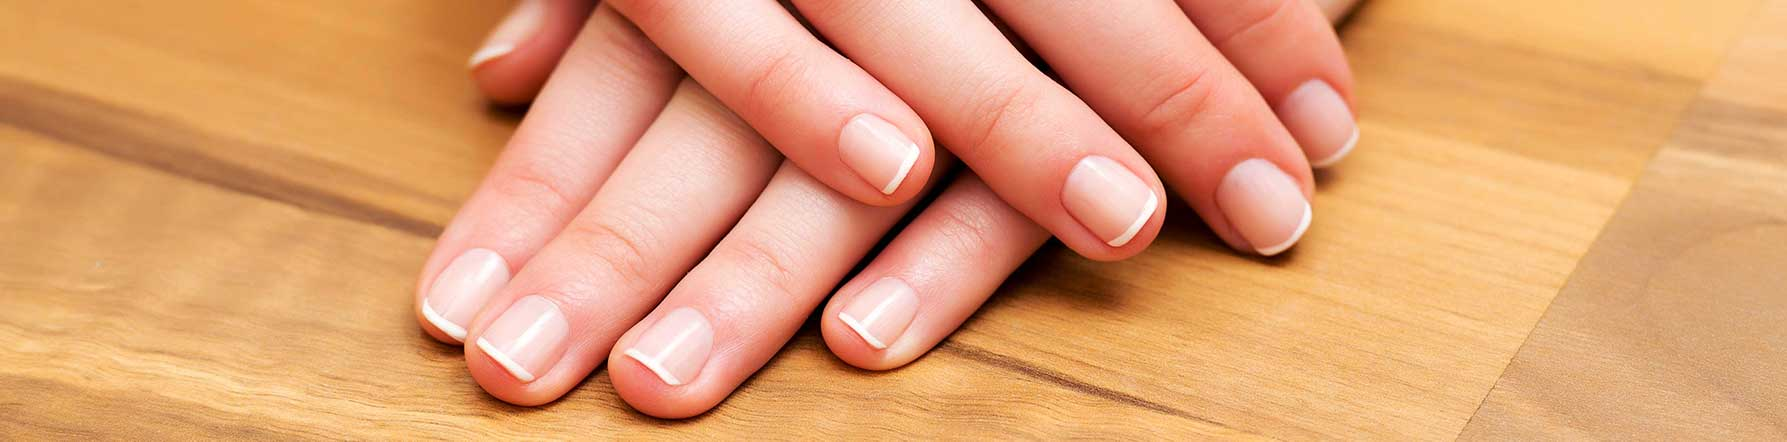 hands with French tip manicure